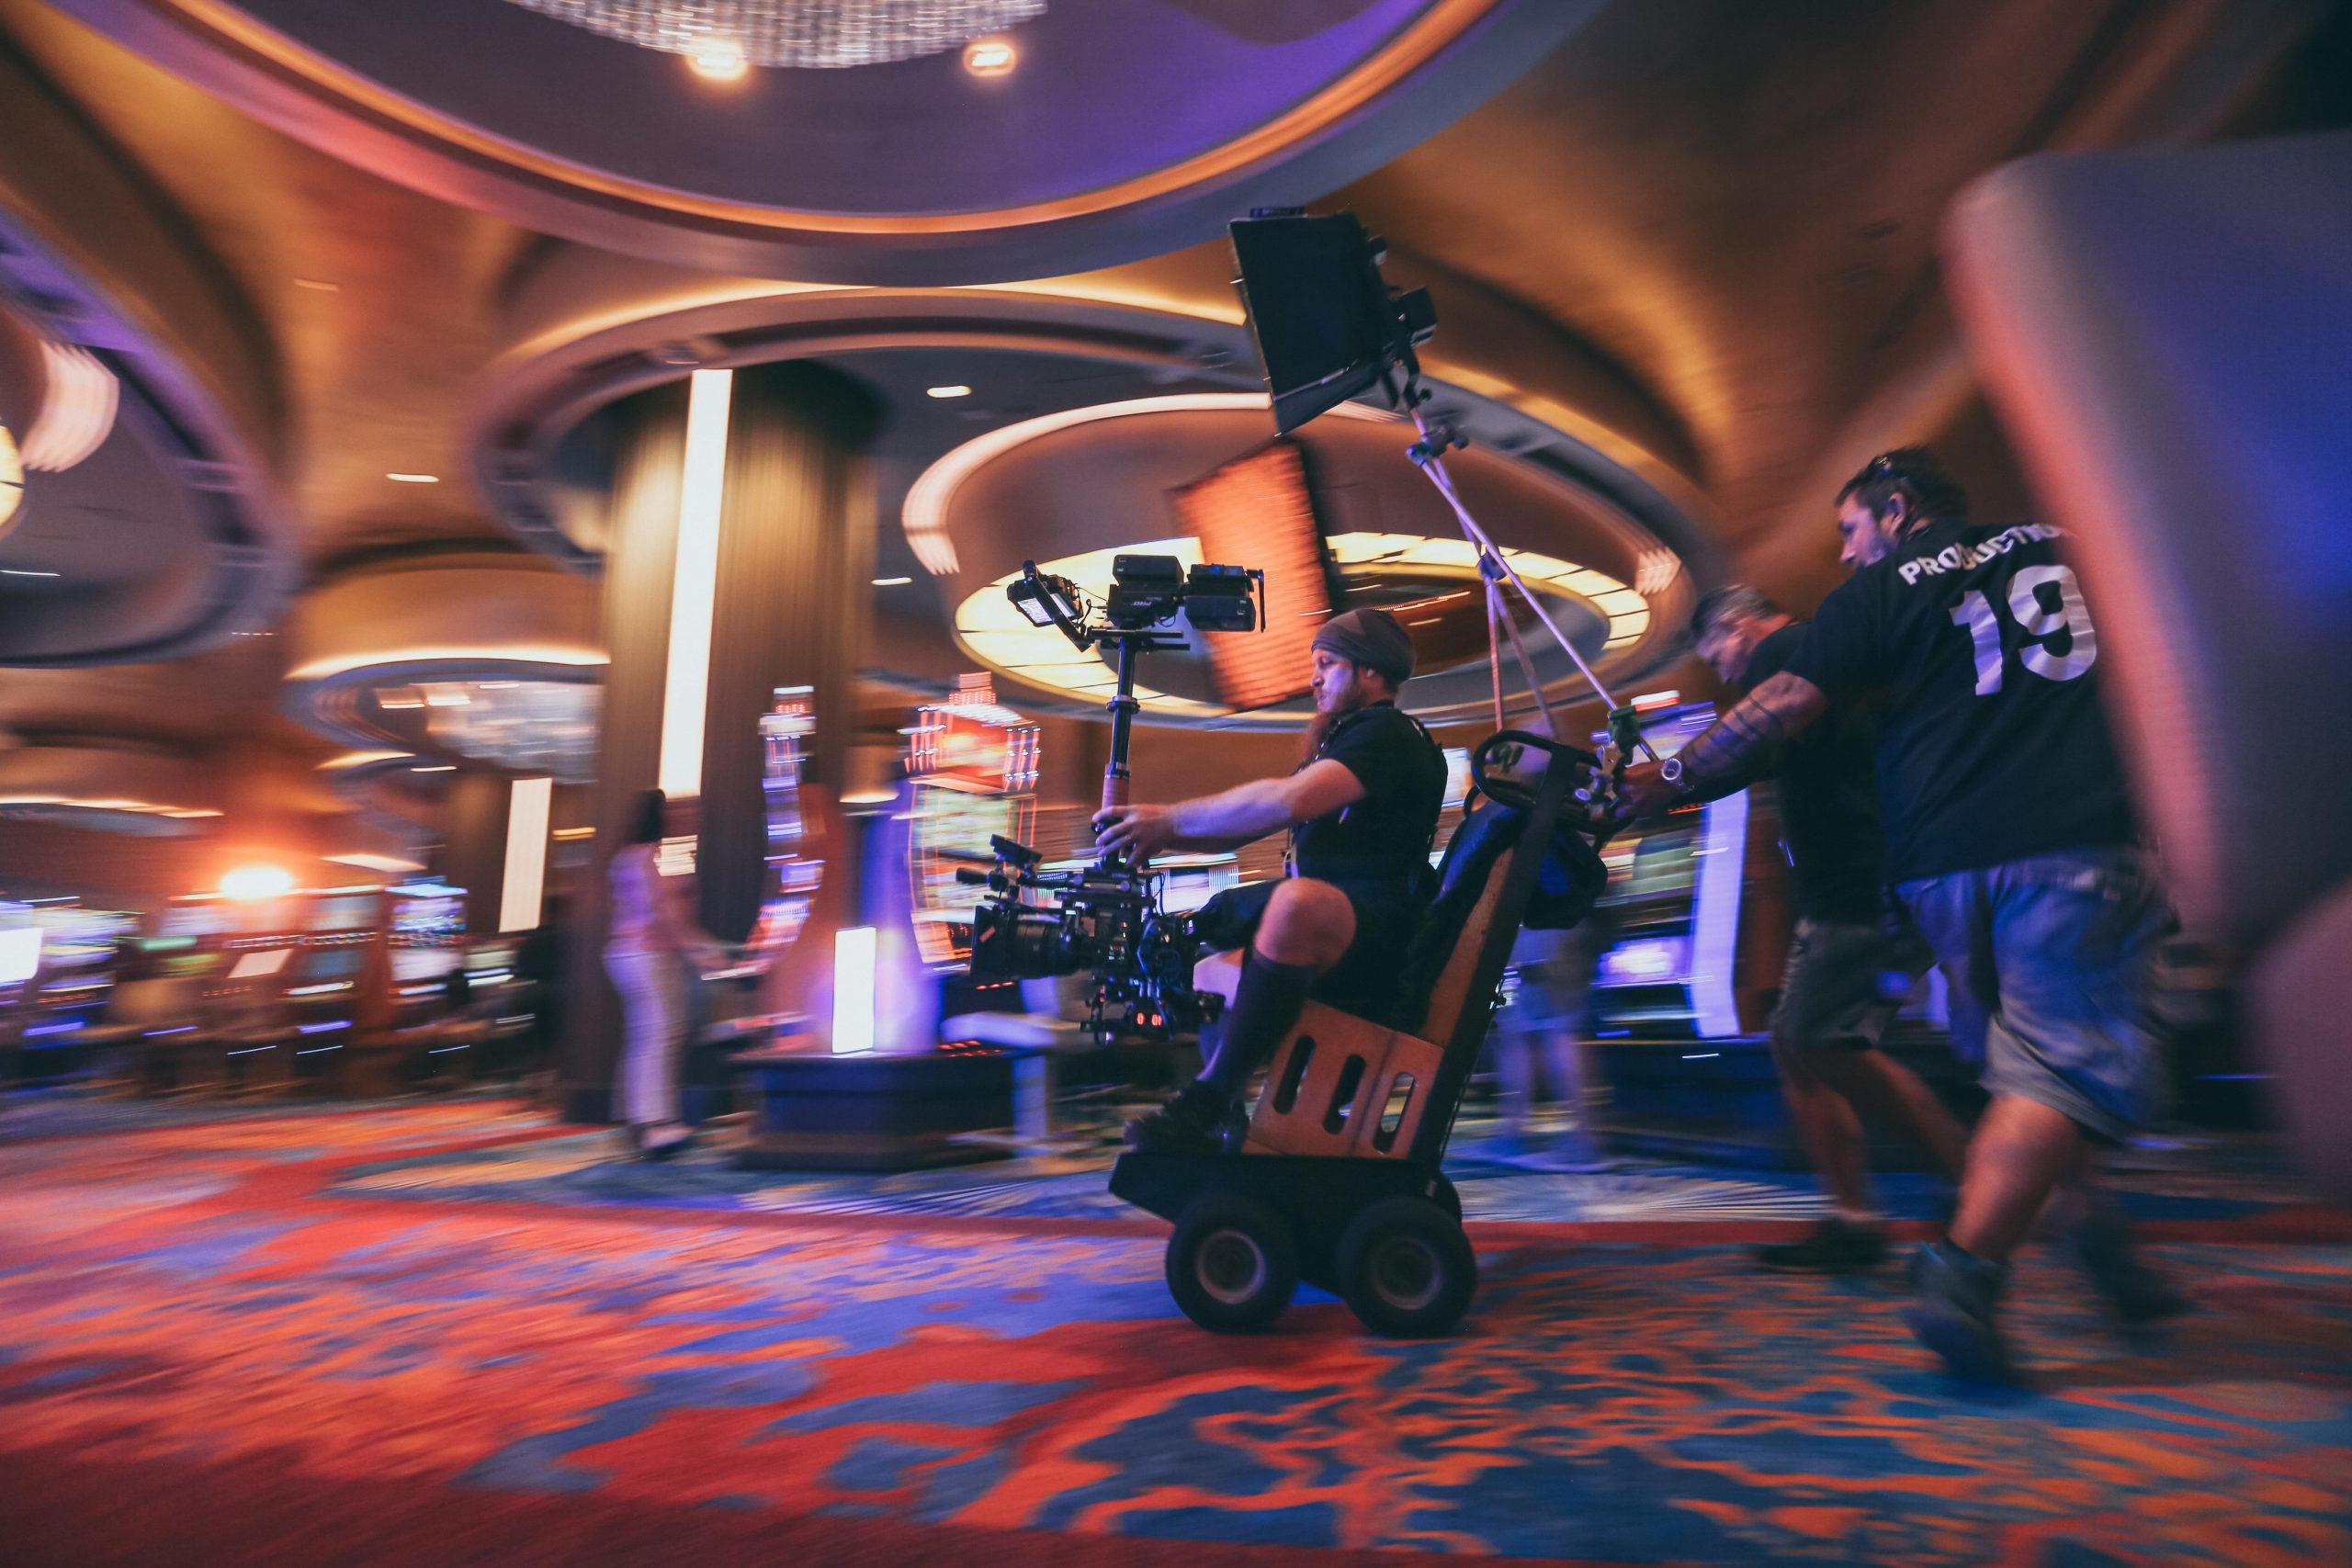 South Florida Seminole Hard Rock Hotel and Casino - Artex Productions - Best Commercial Video Production Company in Miami